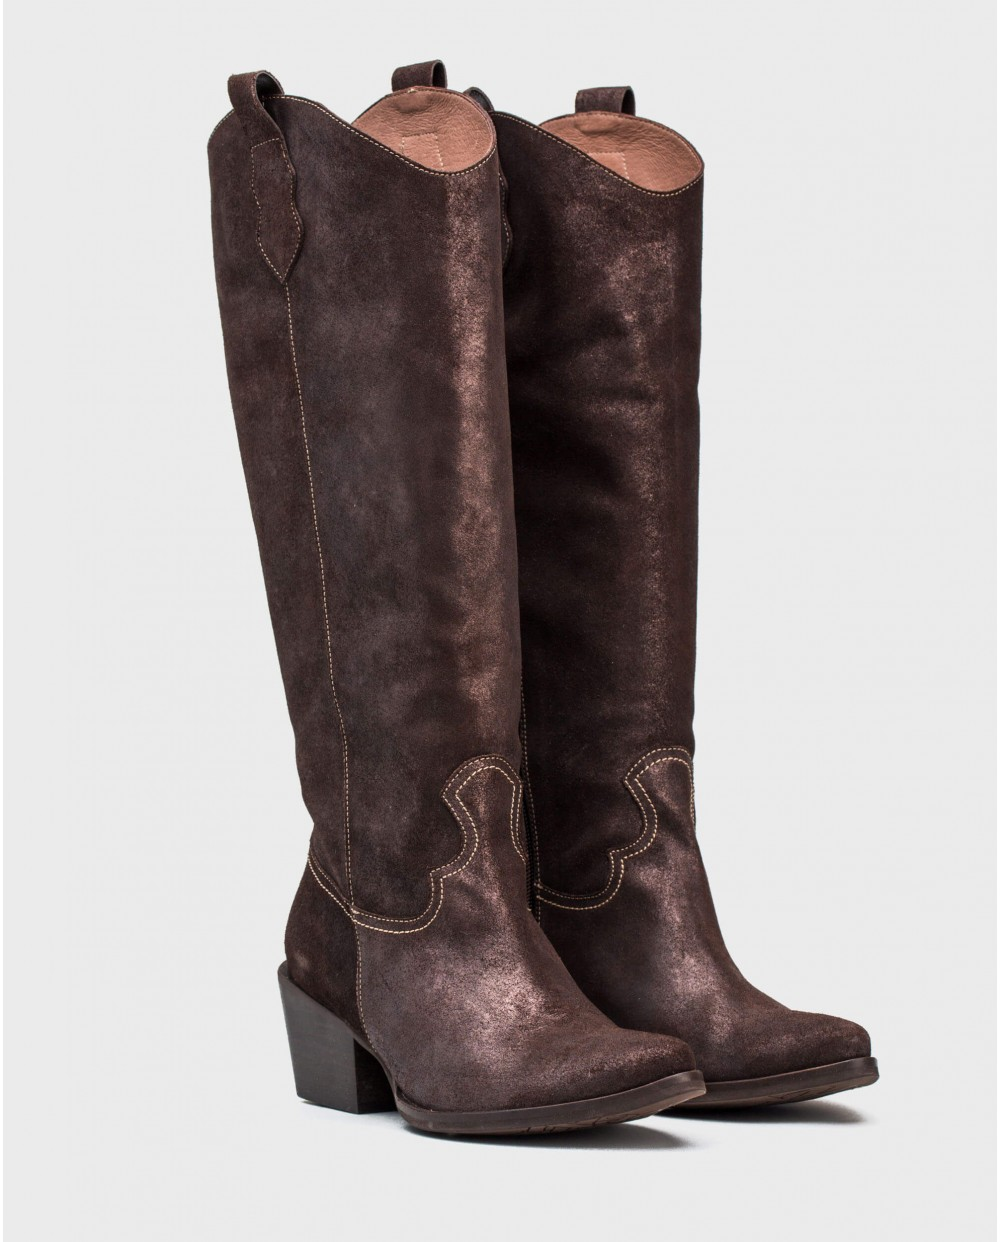 Wonders-Outlet-Metallic leather cowboy boot